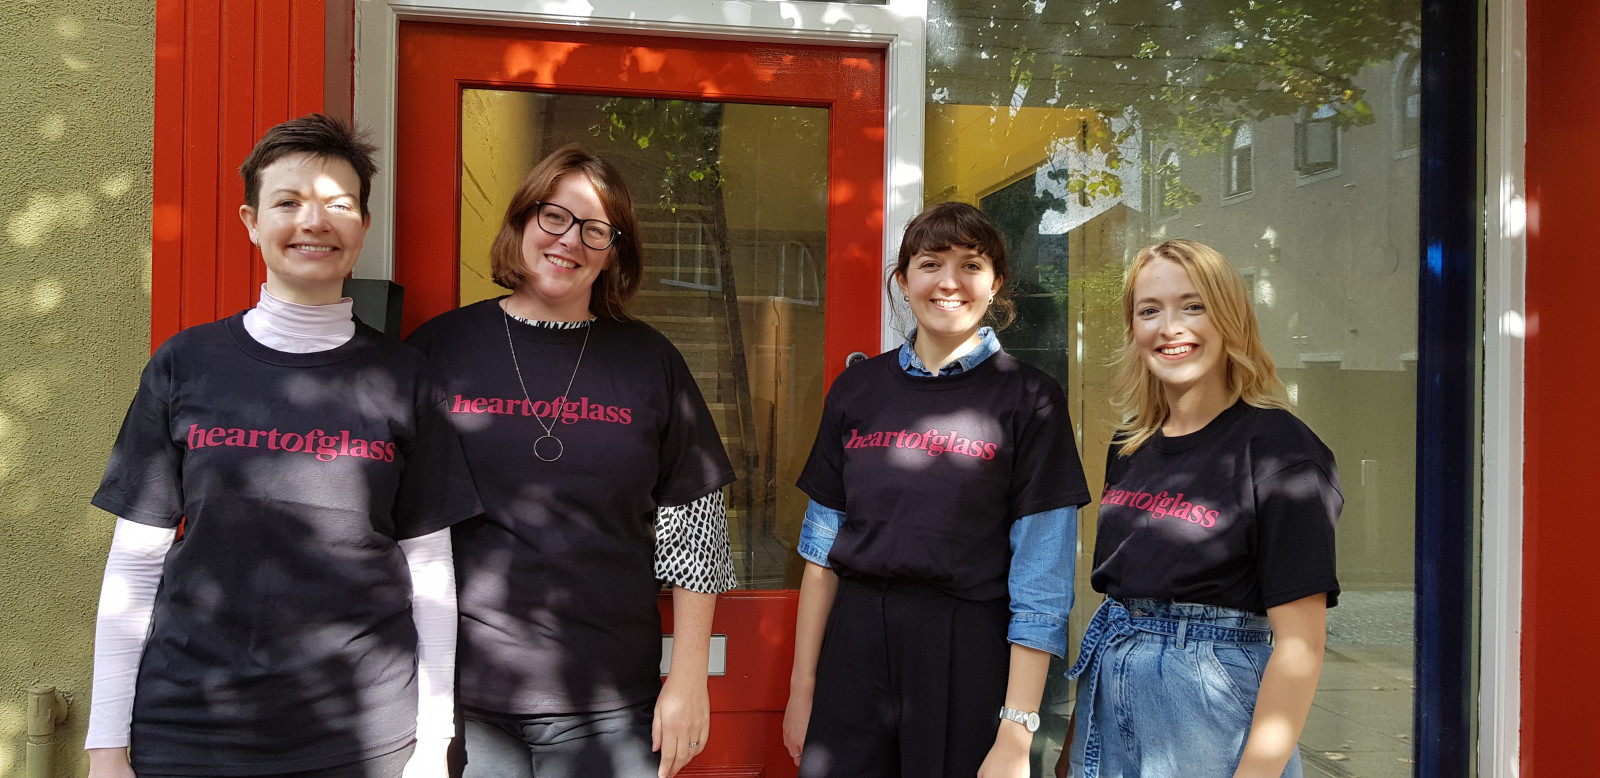 Four women stand in front of a building with a red door and woodwork and a large window. They are all wearing black tshirts with the red Heart of Glass logo printed on to them. This new logo is the words heart of glass across one horizontal line without spaces.